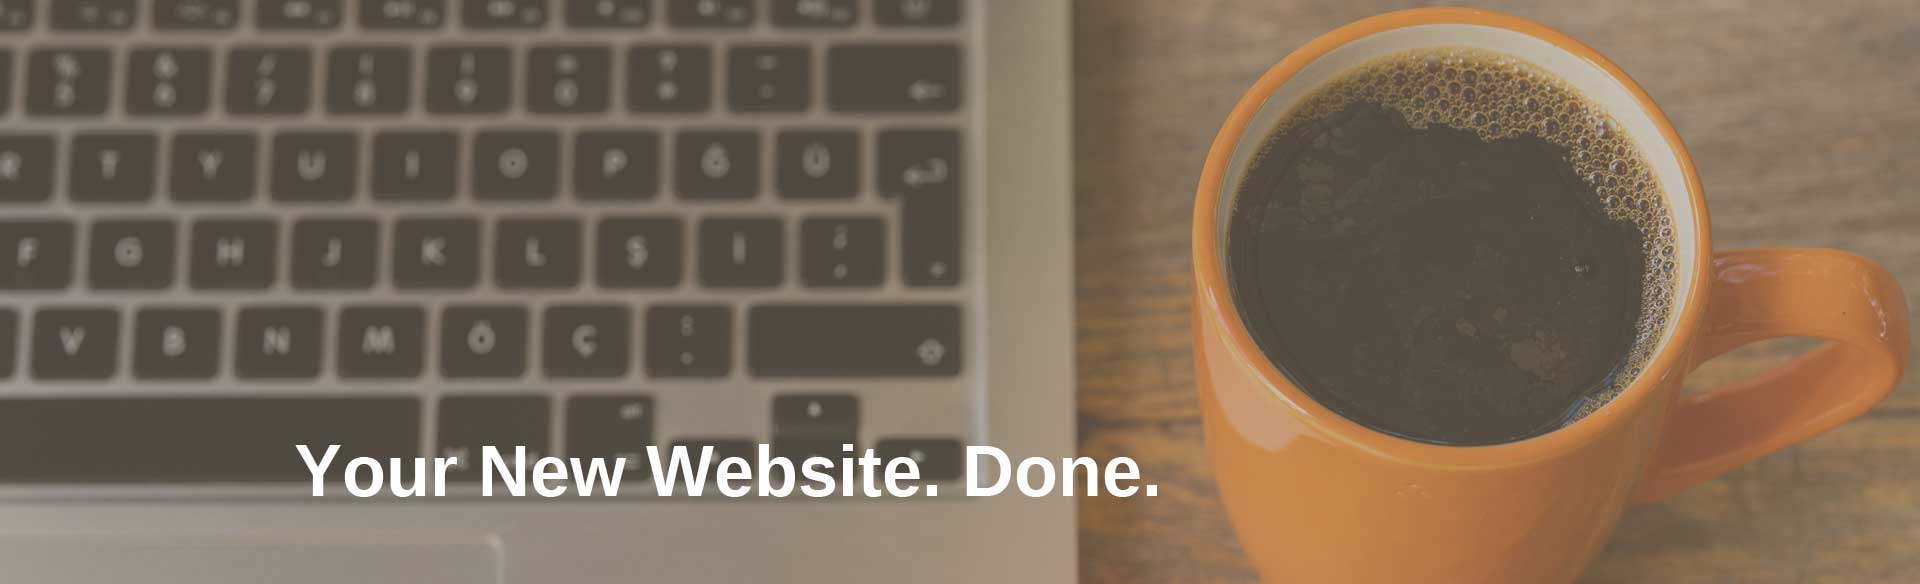 Picture this. Your new website. Done